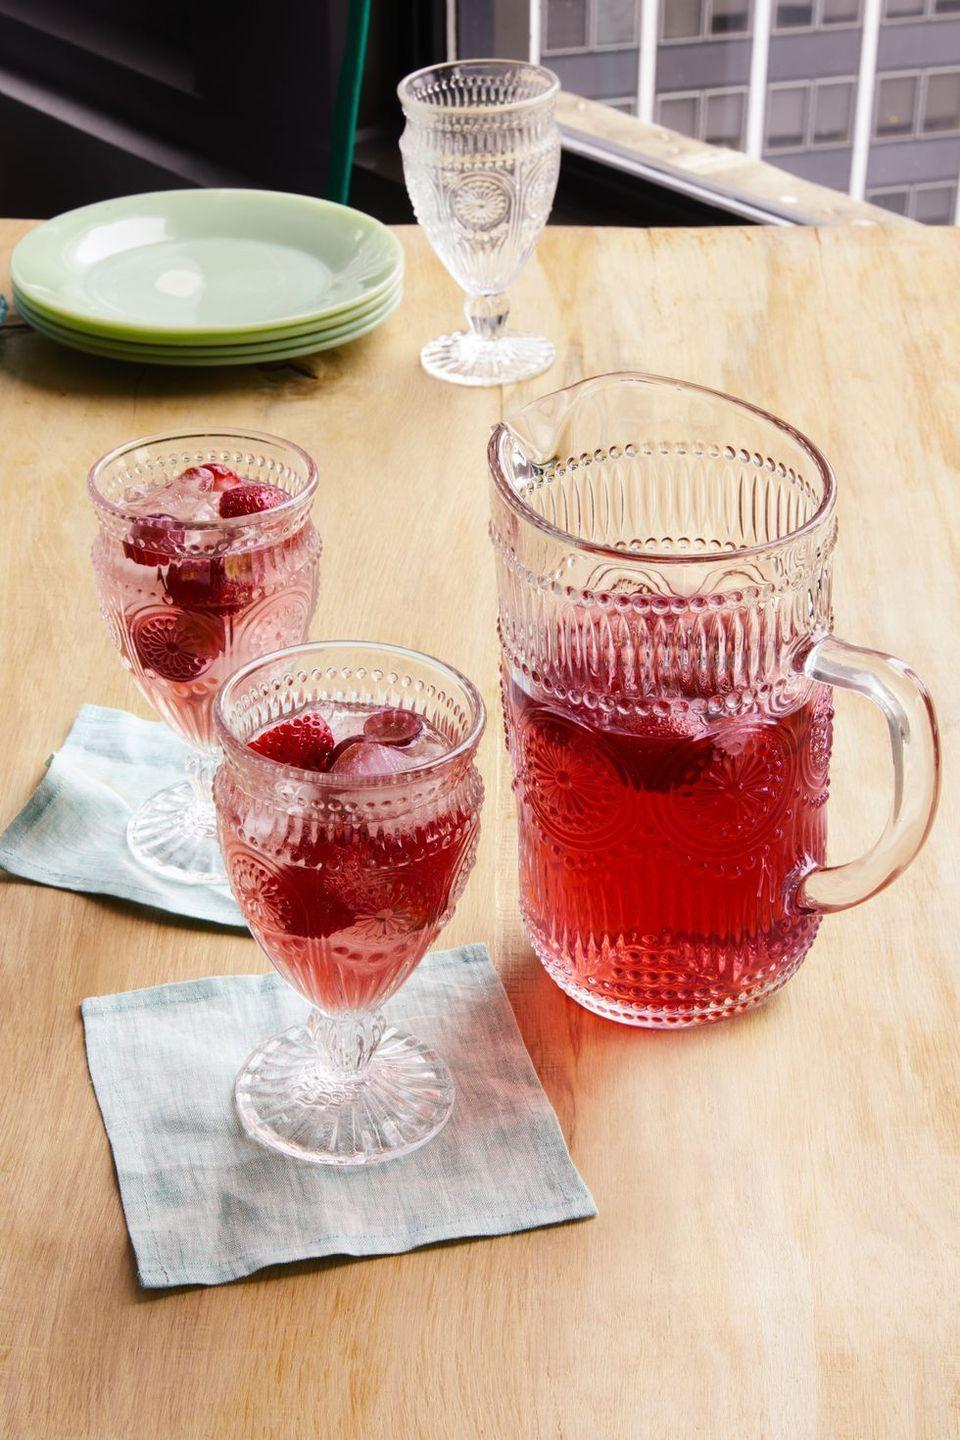 """<p>This fruity, fizzy sangria is made with sparkling wine for a little extra something special, as well as fresh strawberries. </p><p><em><strong>Get the recipe at <a href=""""https://www.thepioneerwoman.com/food-cooking/recipes/a32304366/strawberry-sangria-recipe/"""" rel=""""nofollow noopener"""" target=""""_blank"""" data-ylk=""""slk:The Pioneer Woman"""" class=""""link rapid-noclick-resp"""">The Pioneer Woman</a>.</strong></em></p>"""